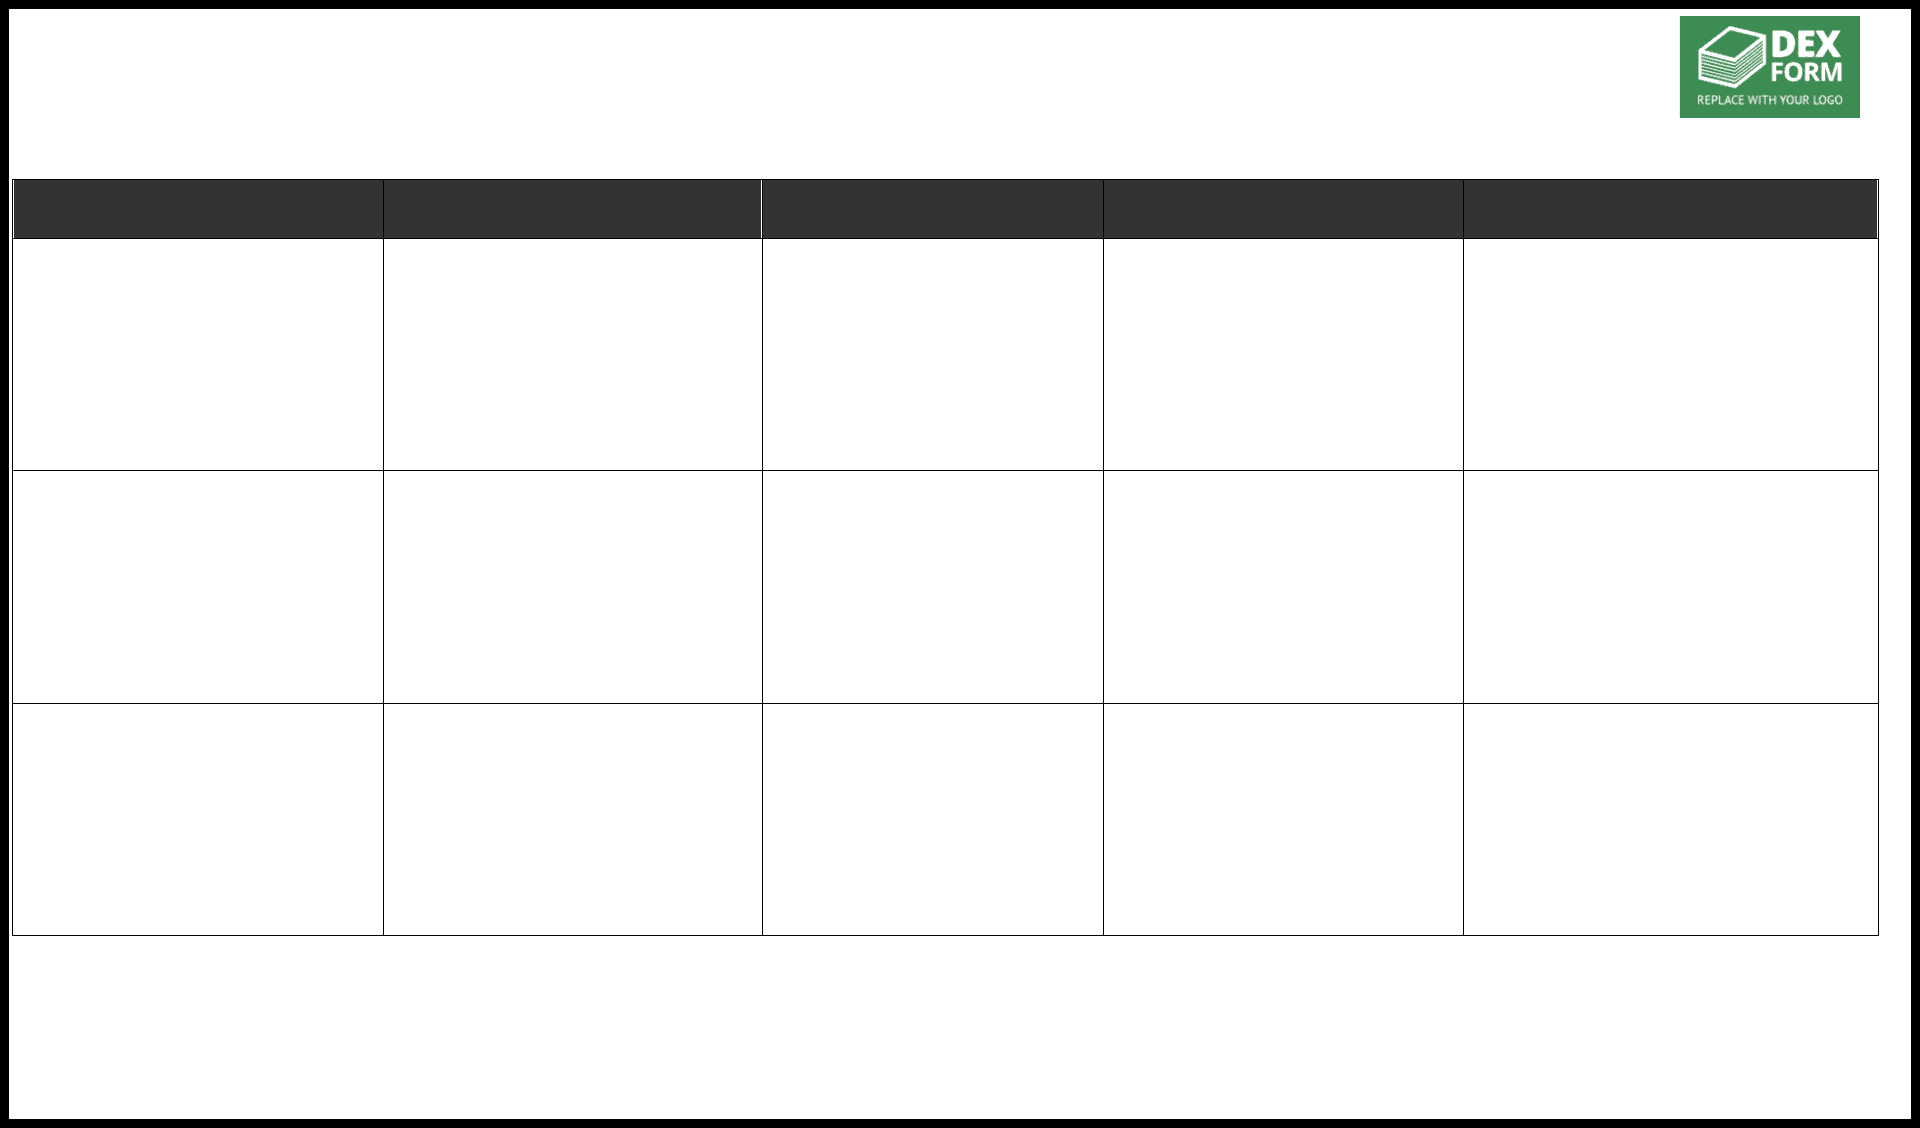 Gapysis Worksheet Template In Word And Formats